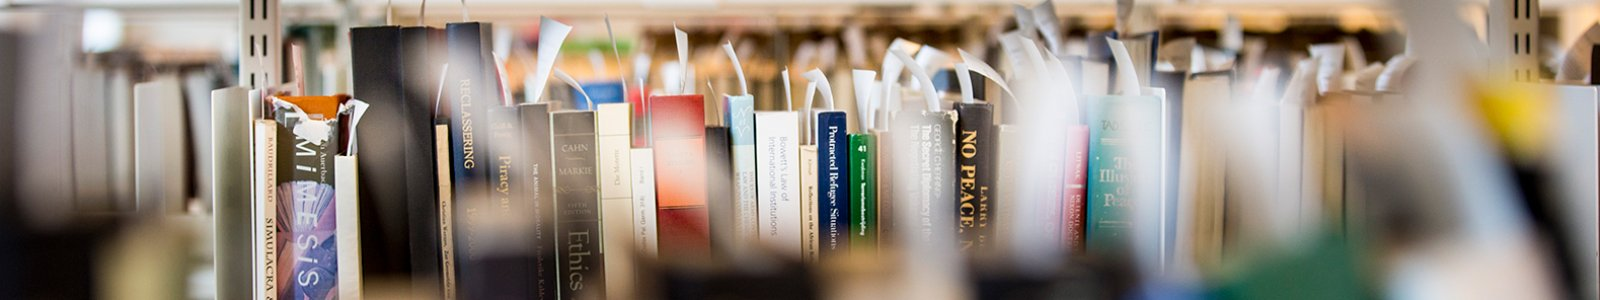 Universiteitsbibliotheek - collecties